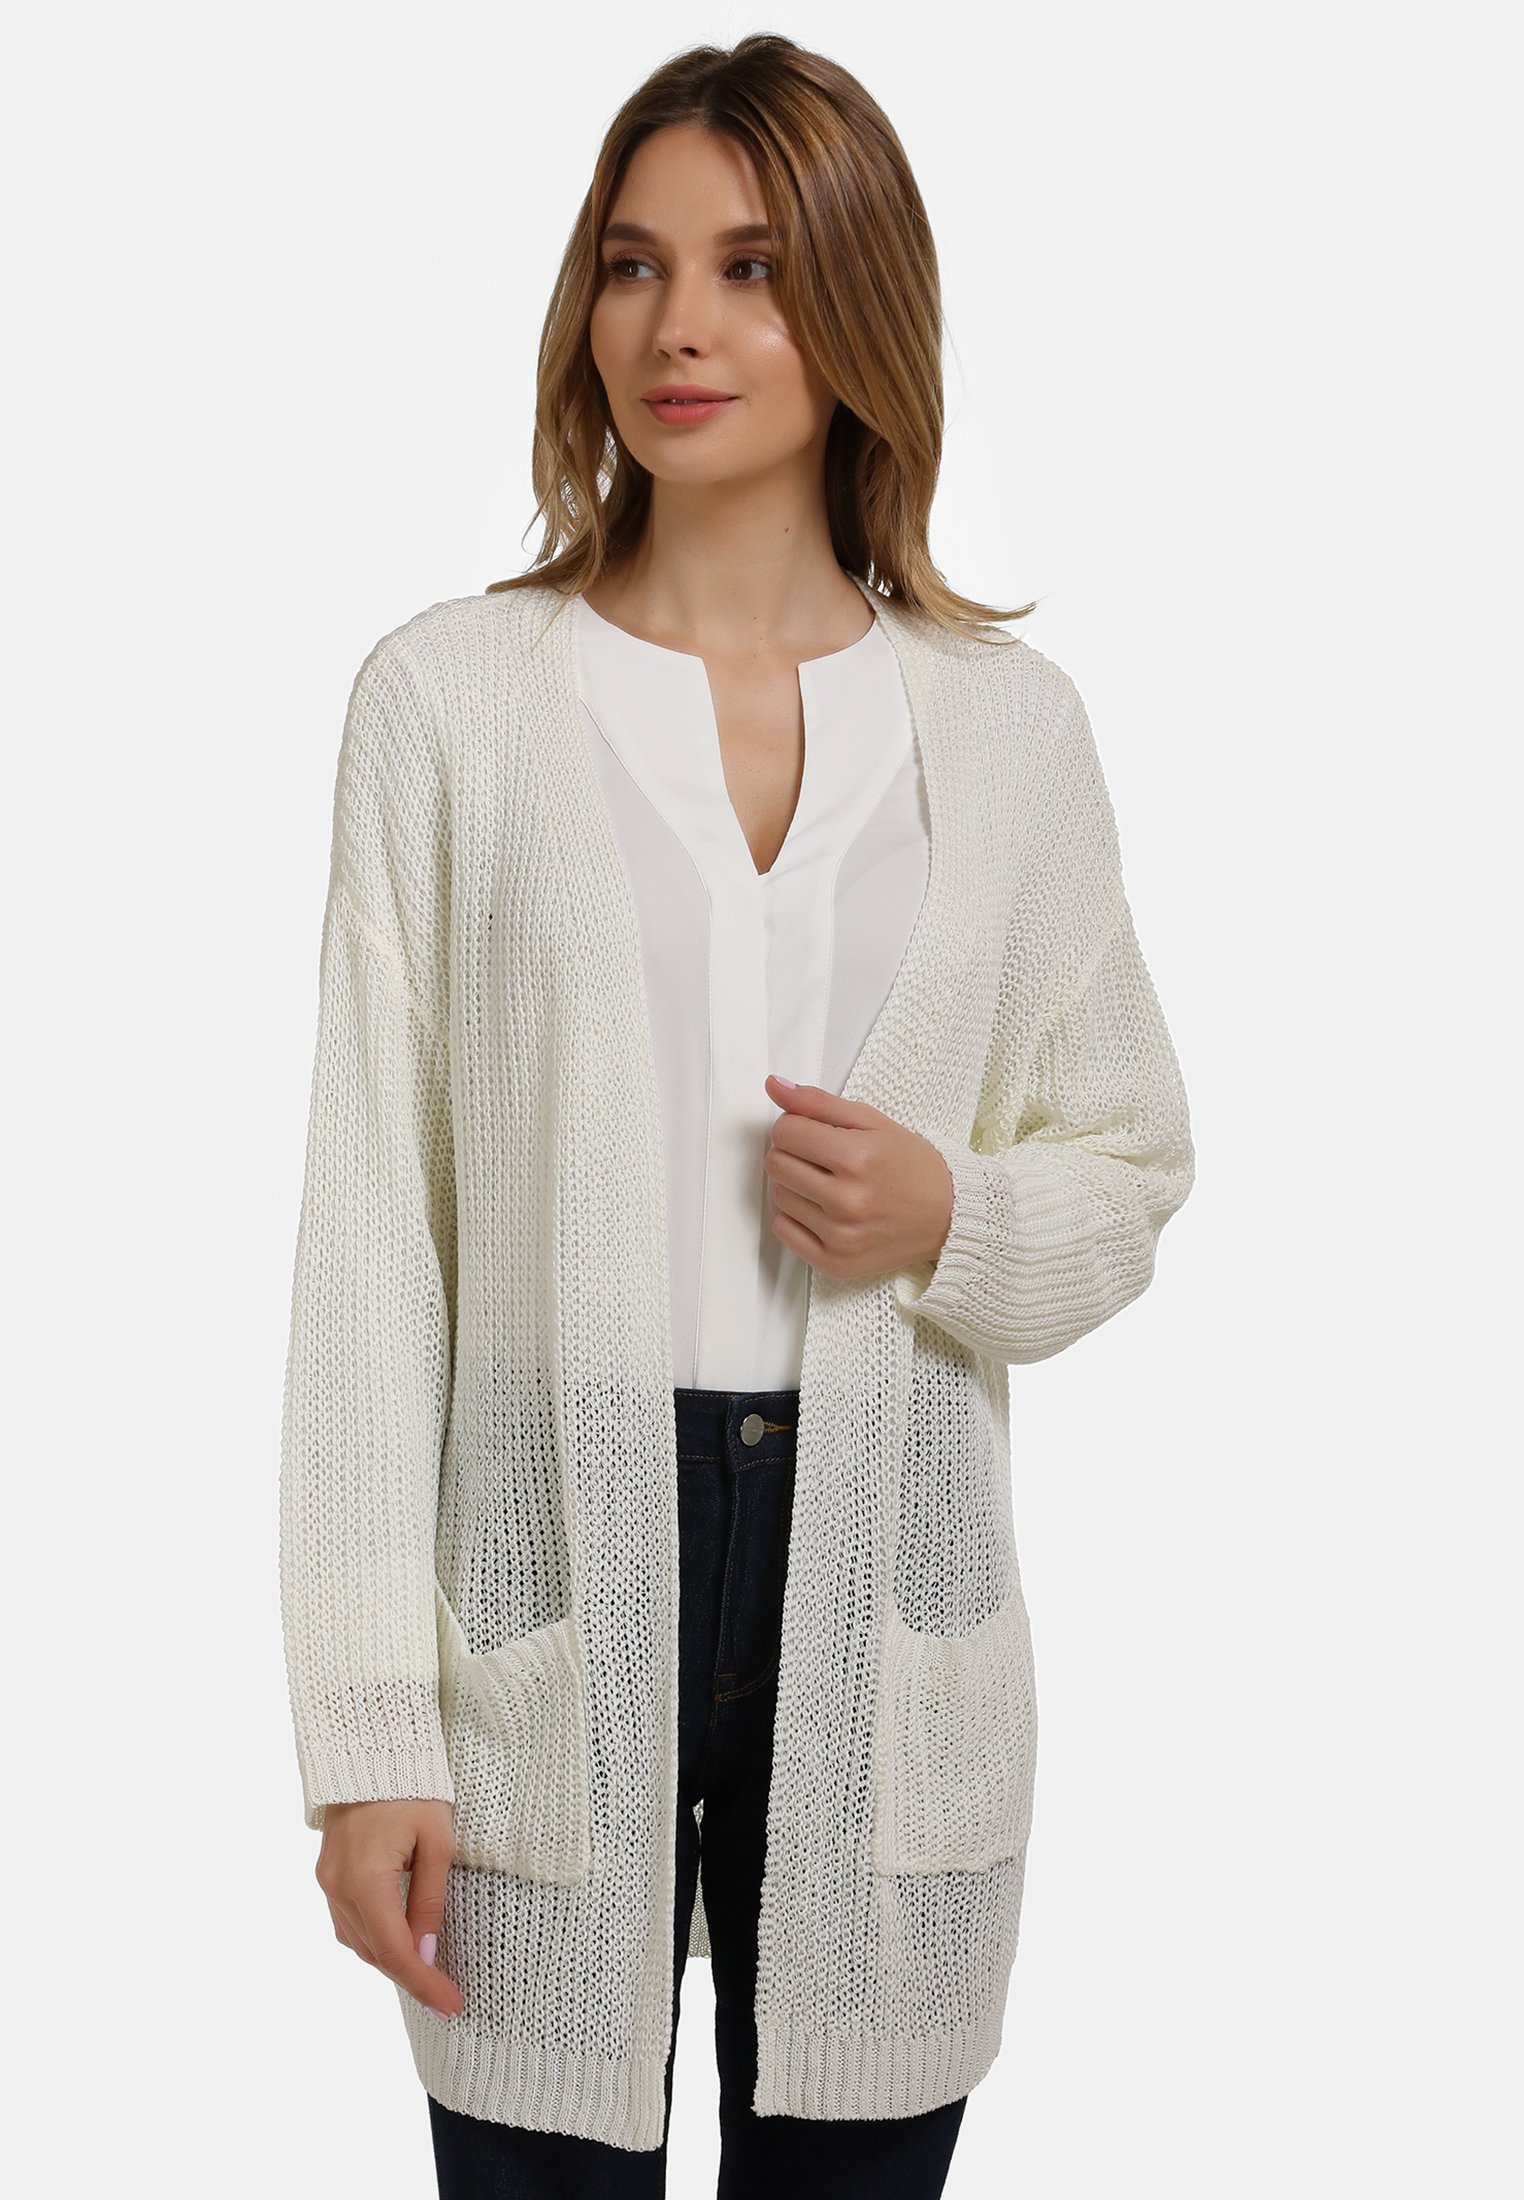 Outlet Store Women's Clothing usha Cardigan white LAxBmxgVN